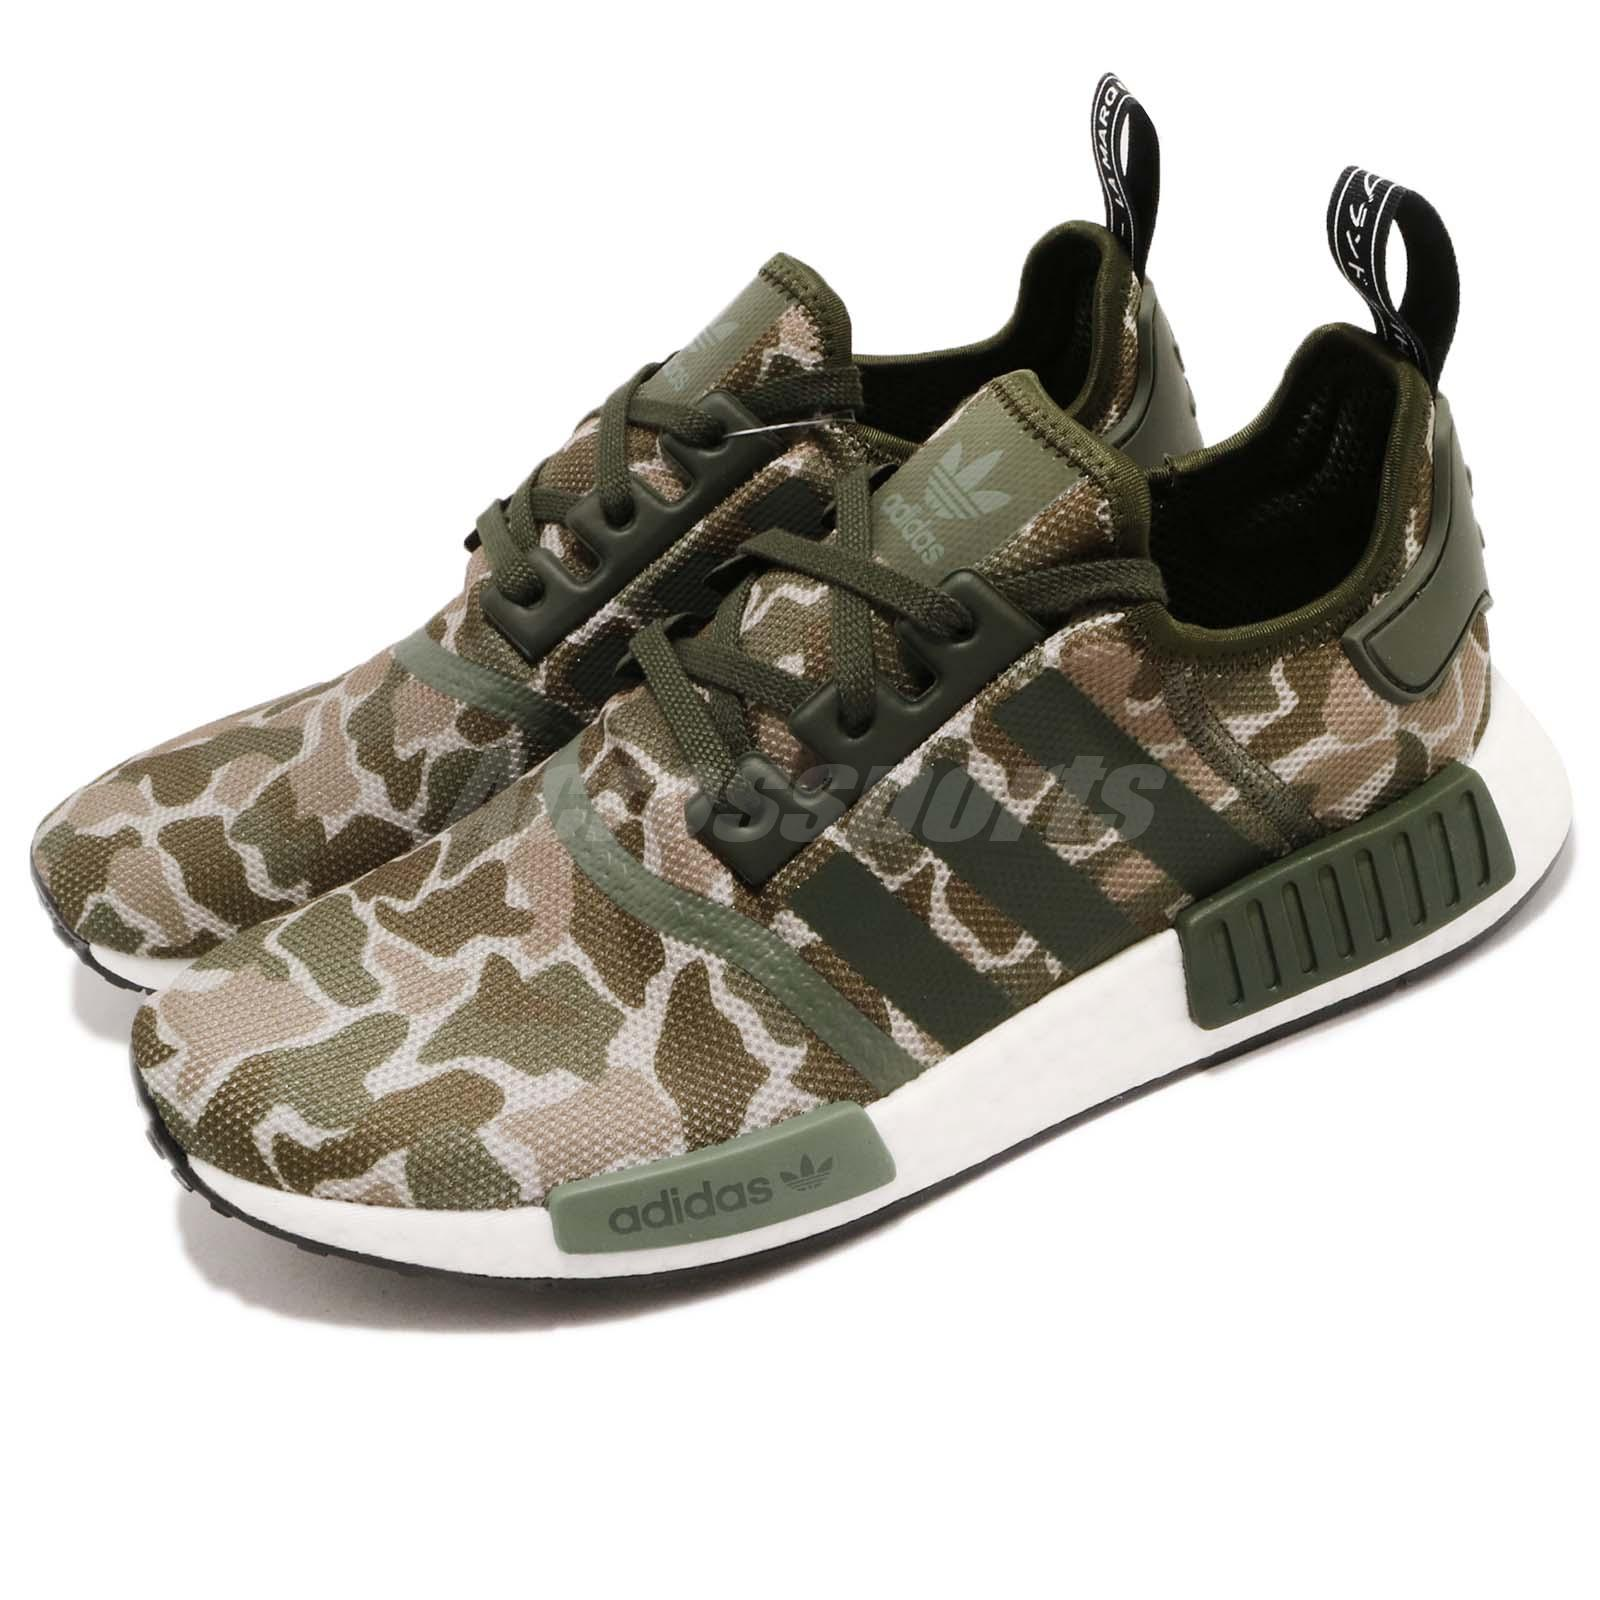 010963400d856 Details about adidas Originals NMD R1 Green Brown Camo Mens Running Shoes  BOOST D96617